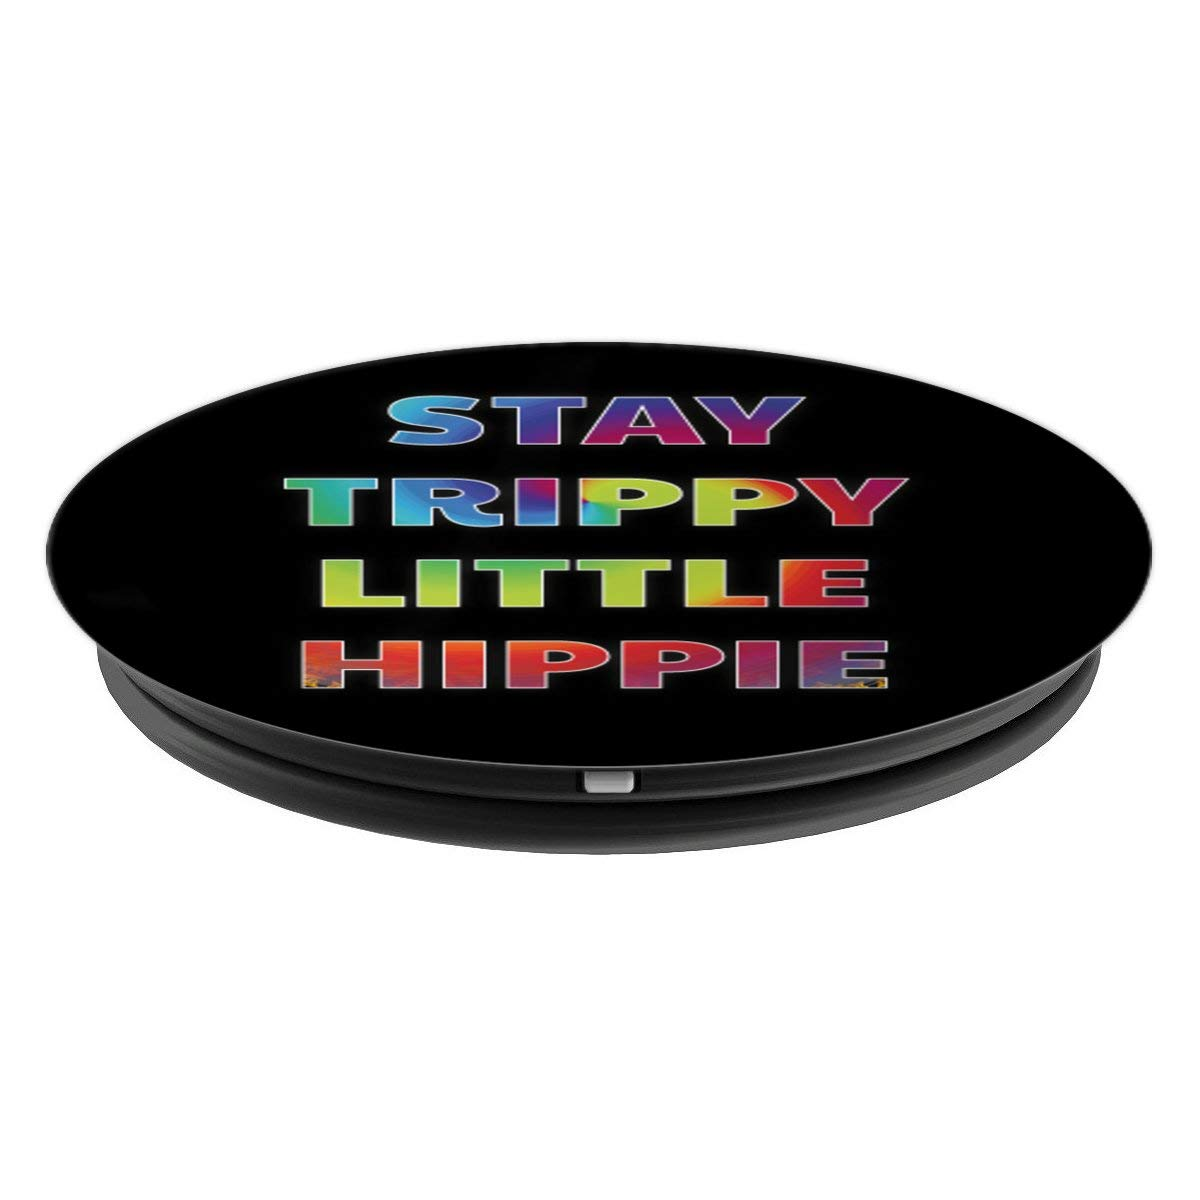 Amazon.com: Stay Trippy Little Hippie – PopSockets agarre y ...